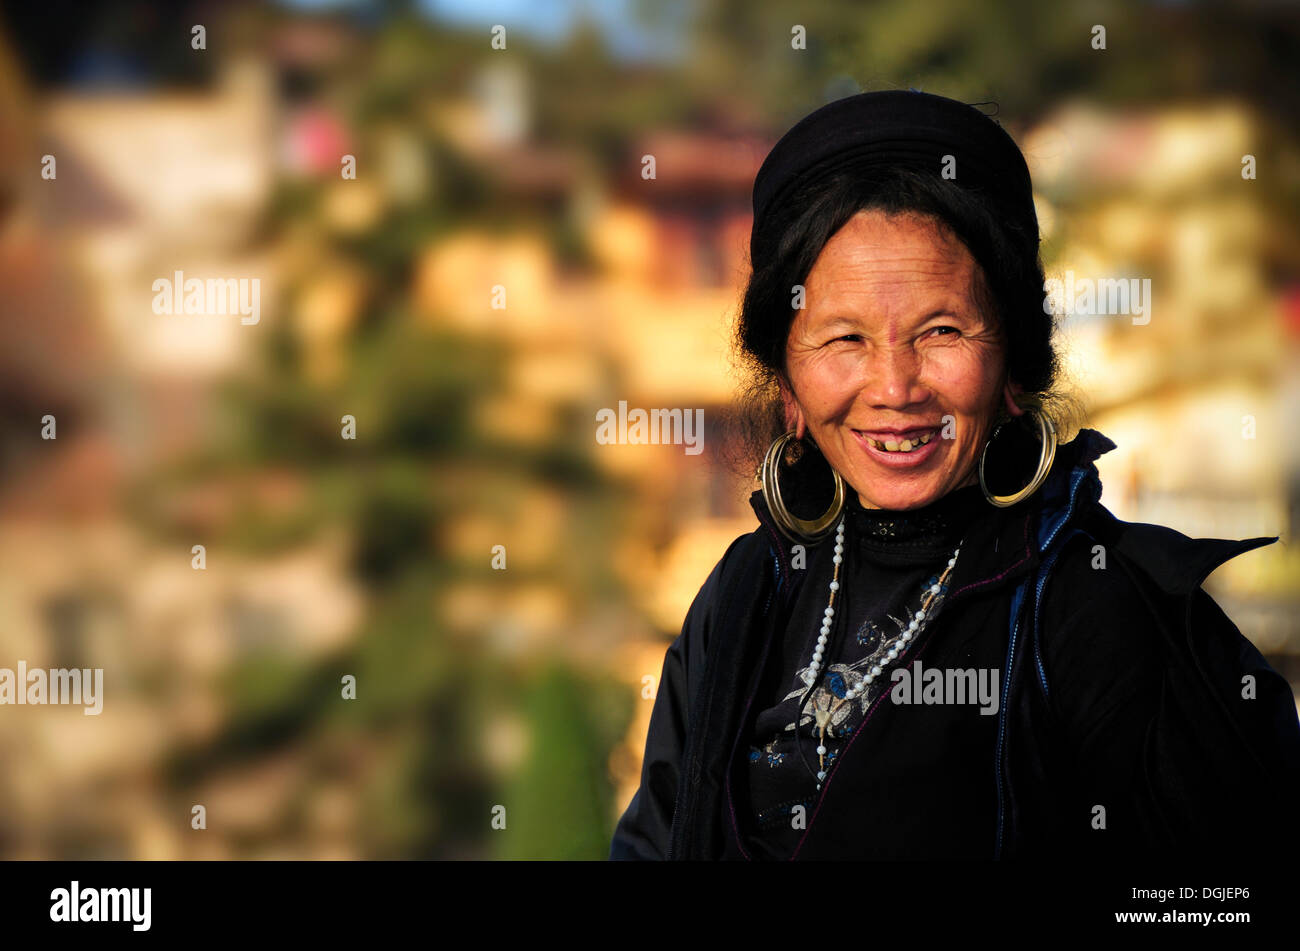 Woman from the Black Hmong ethnic minority group at the market of Sapa or Sa Pa, northern Vietnam, Vietnam, Asia - Stock Image